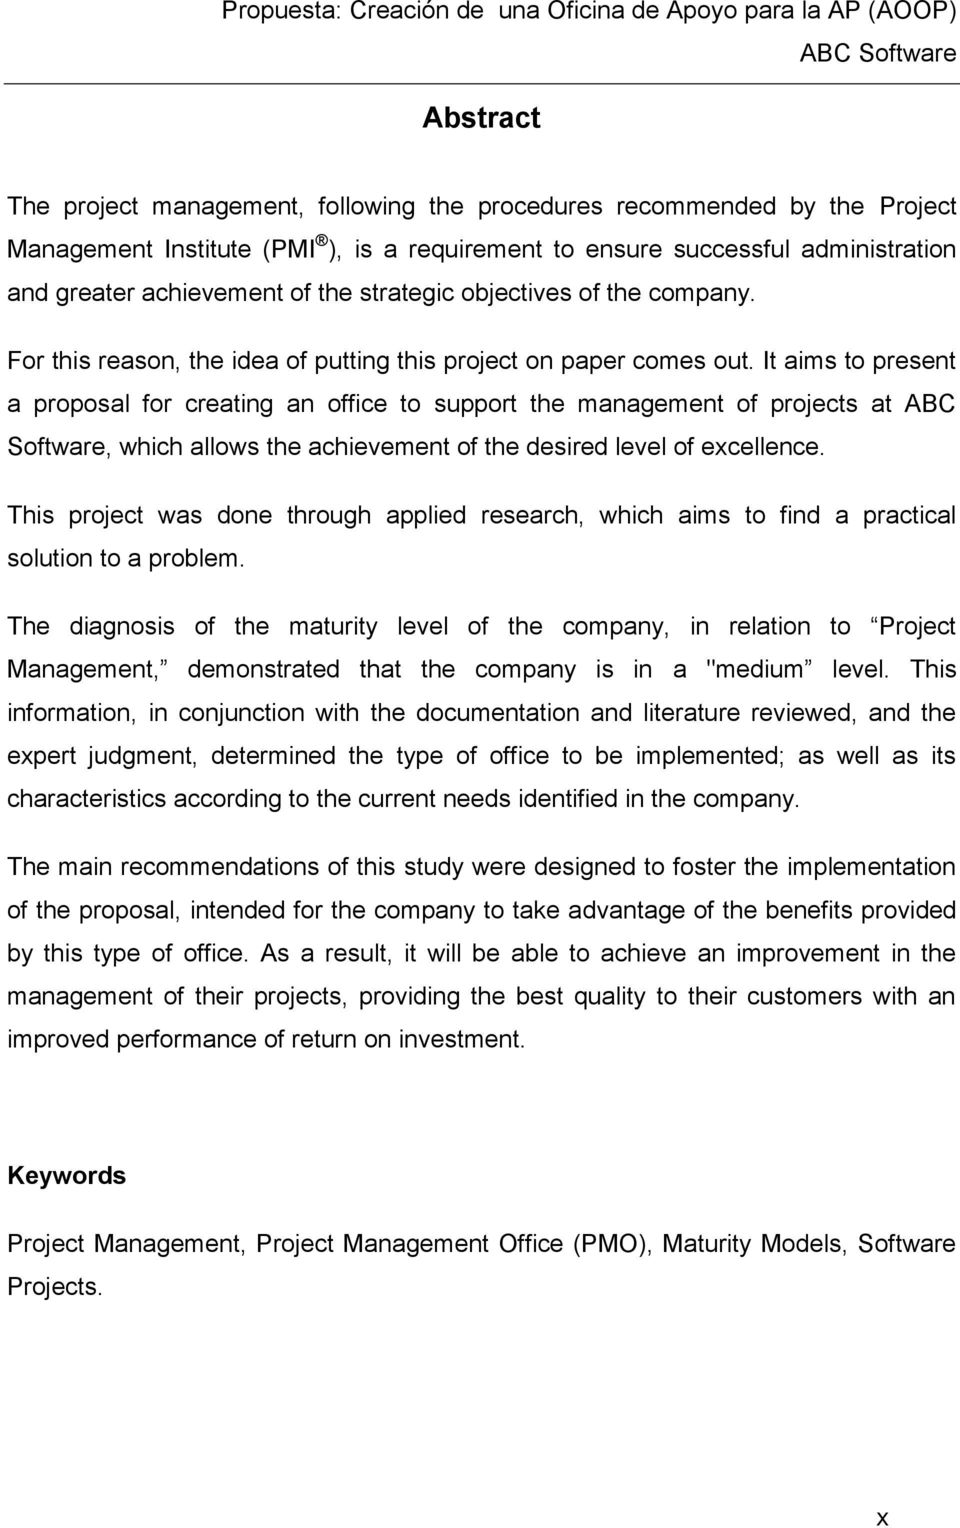 It aims to present a proposal for creating an office to support the management of projects at ABC Software, which allows the achievement of the desired level of excellence.